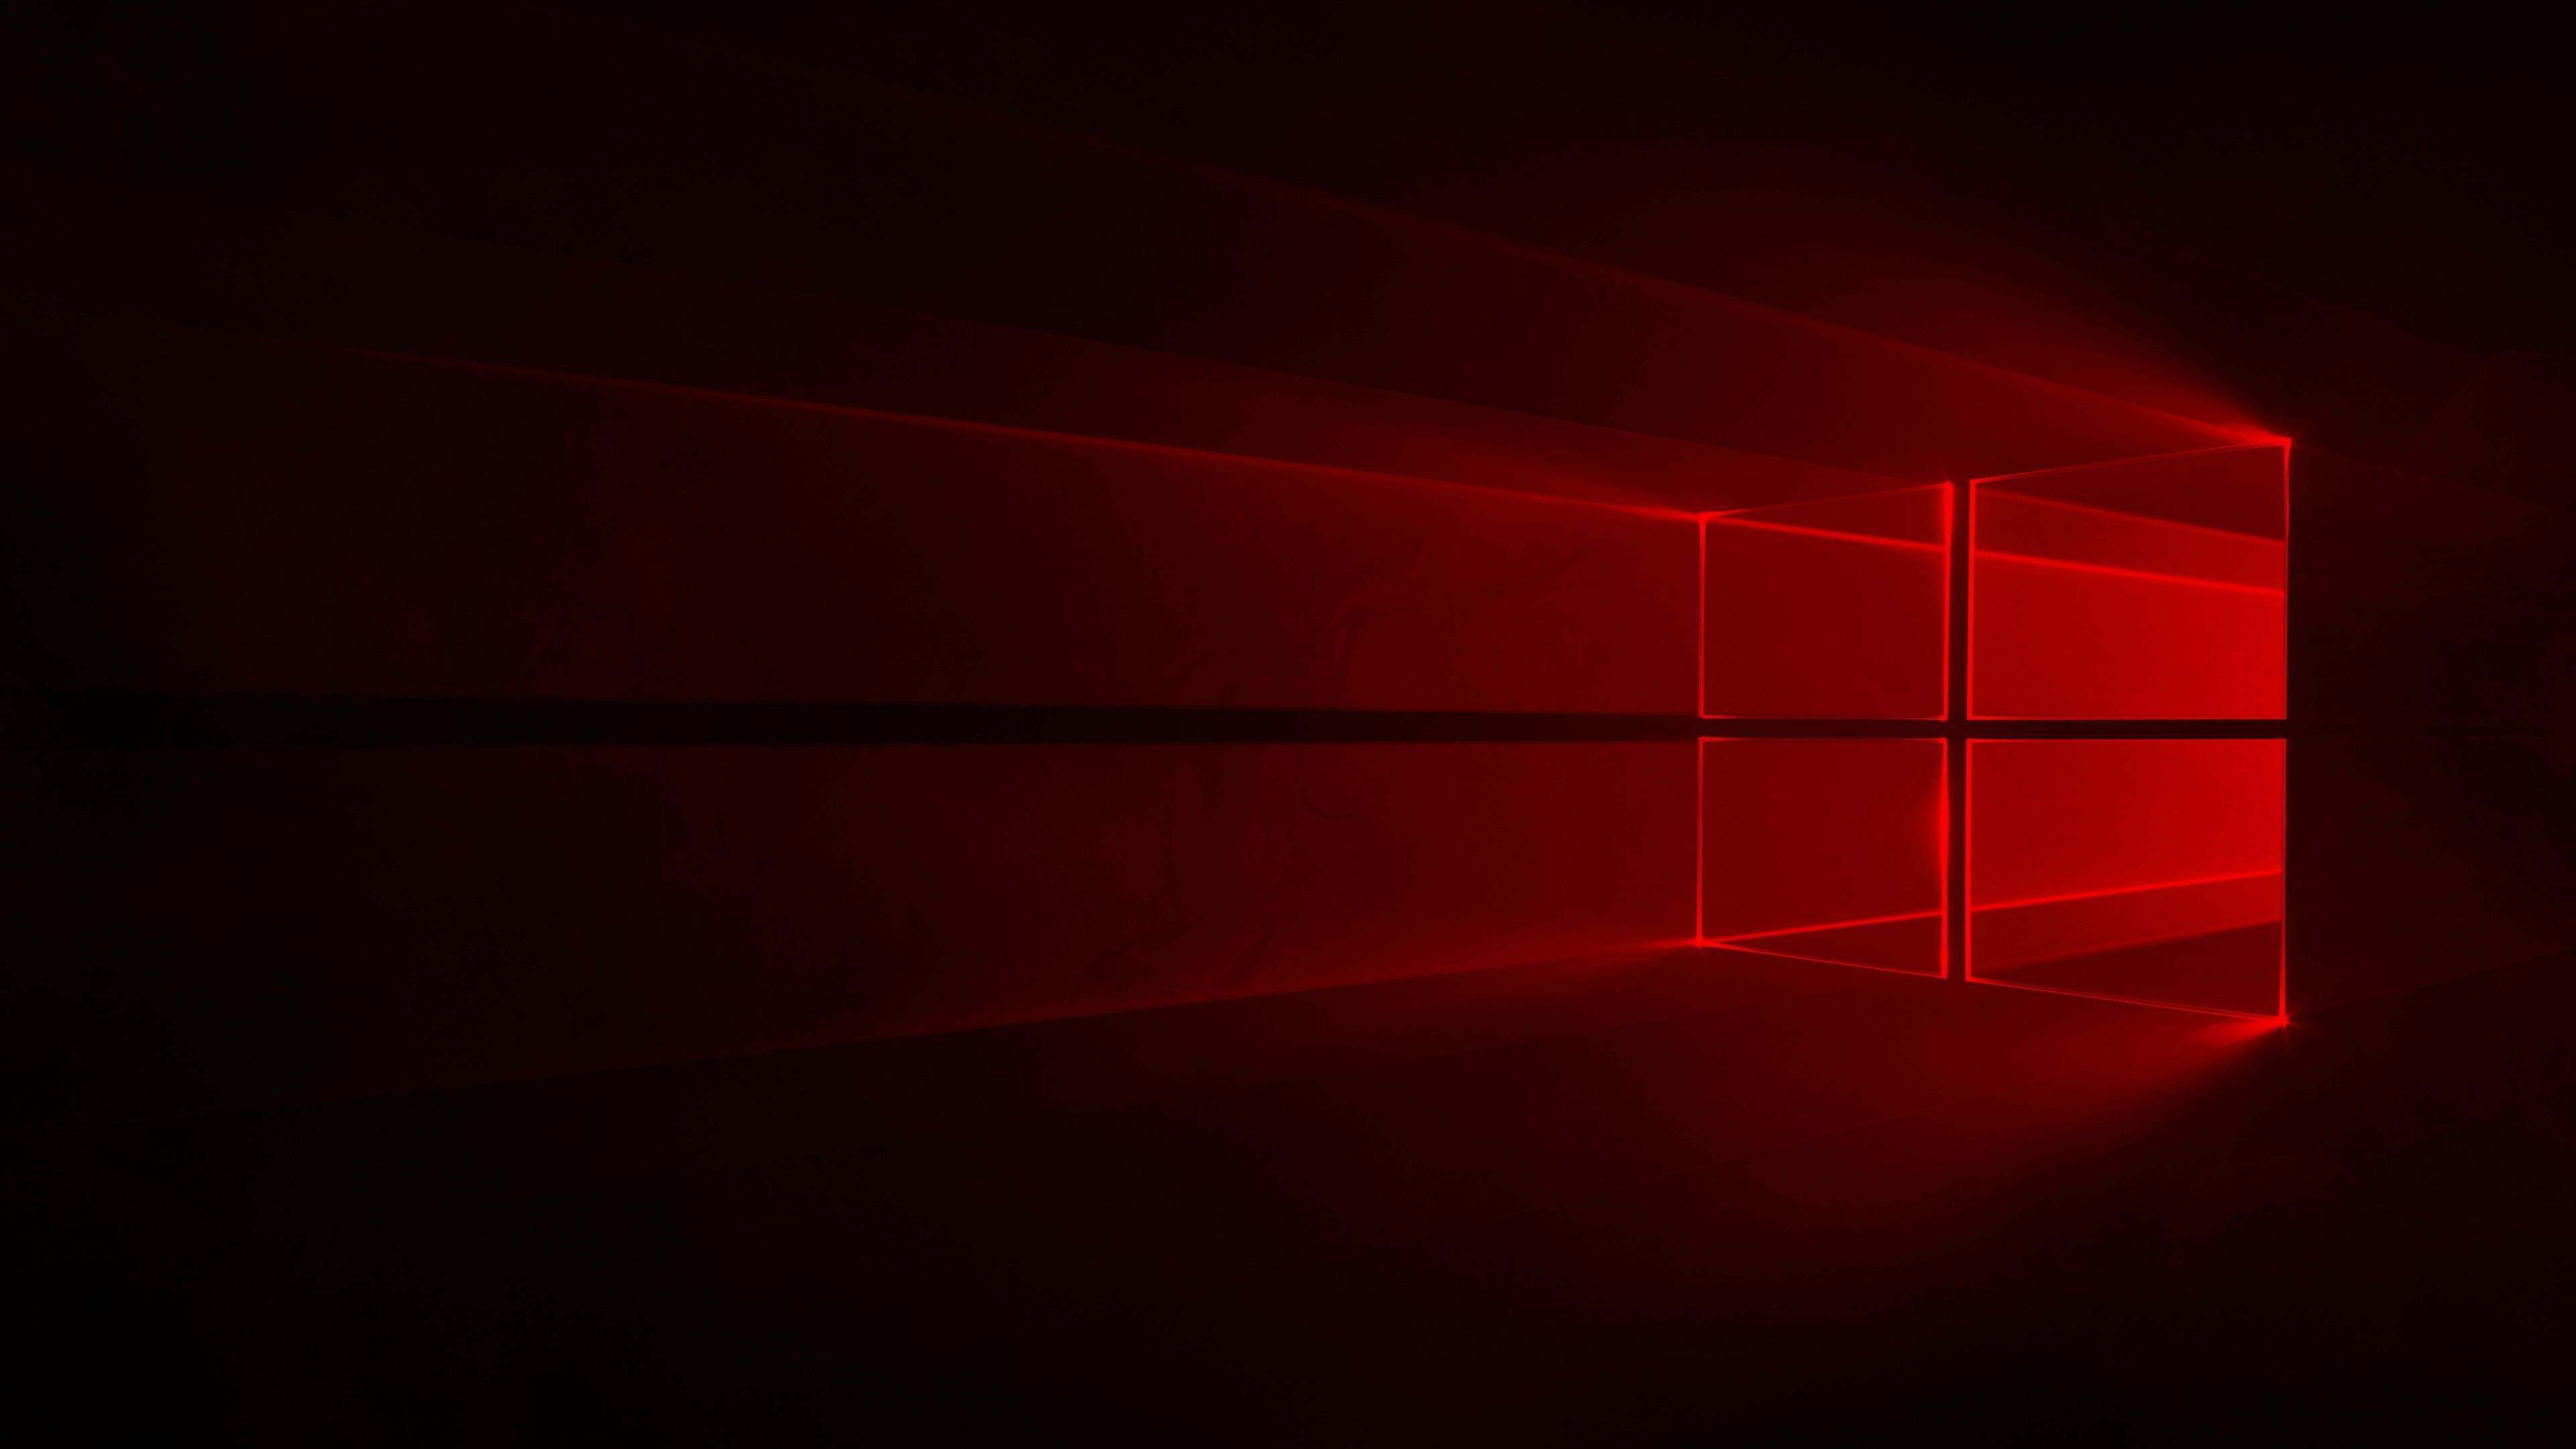 Red Windows 10 Wallpaper HD 71 images 3840x2160